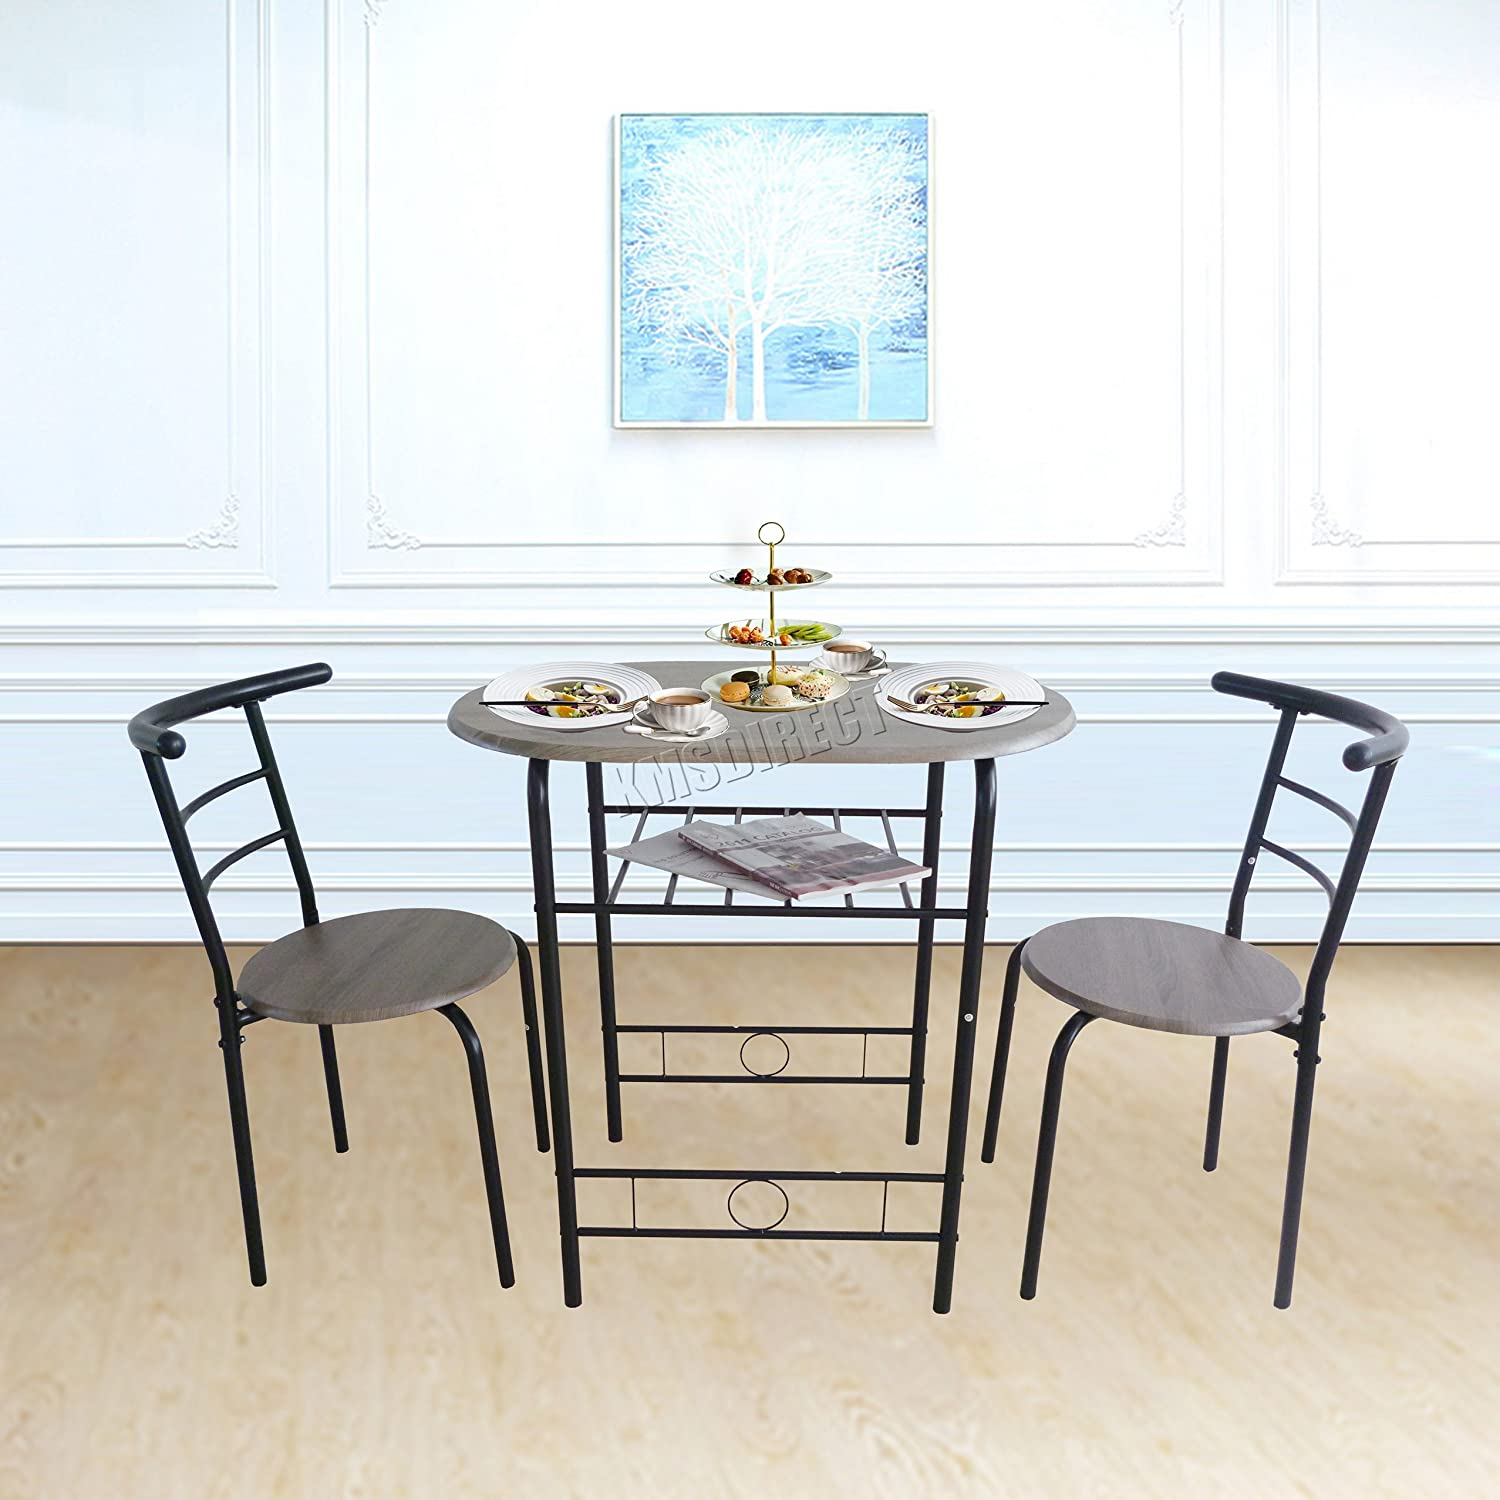 WestWood Compact Dining Table Breakfast Bar With 2 Chair Stool Set Metal Wooden MDF Modern Kitchen Room Home Furniture DS06 Black KMS